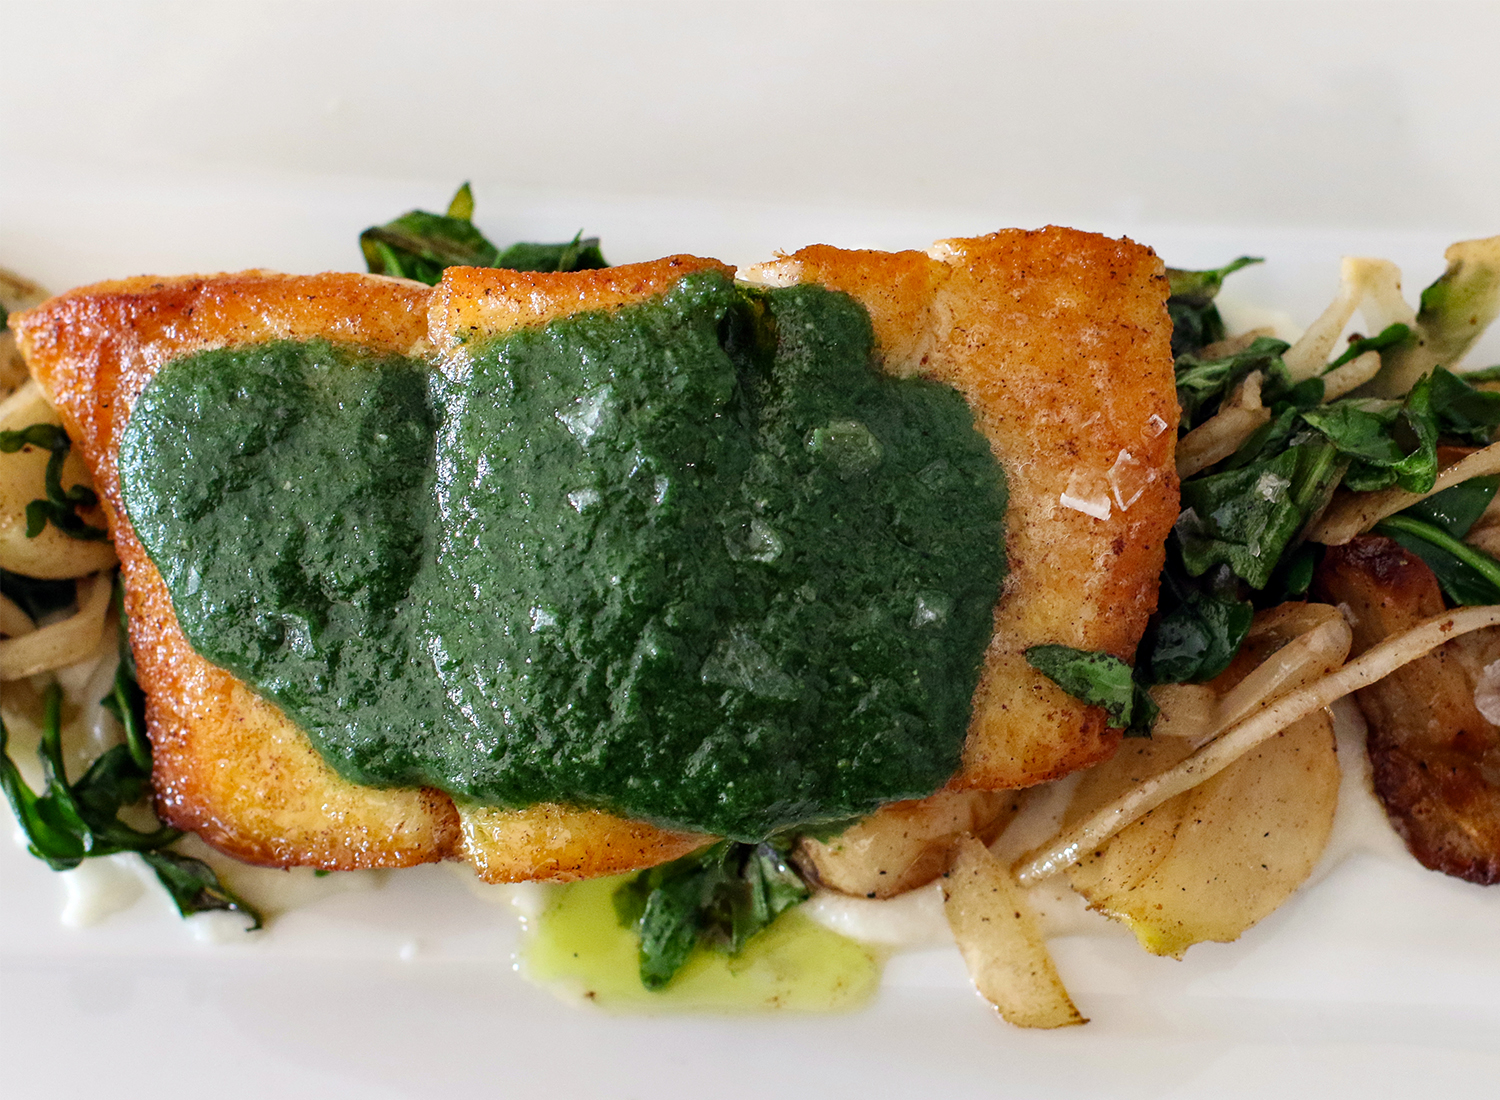 Seared halibut.